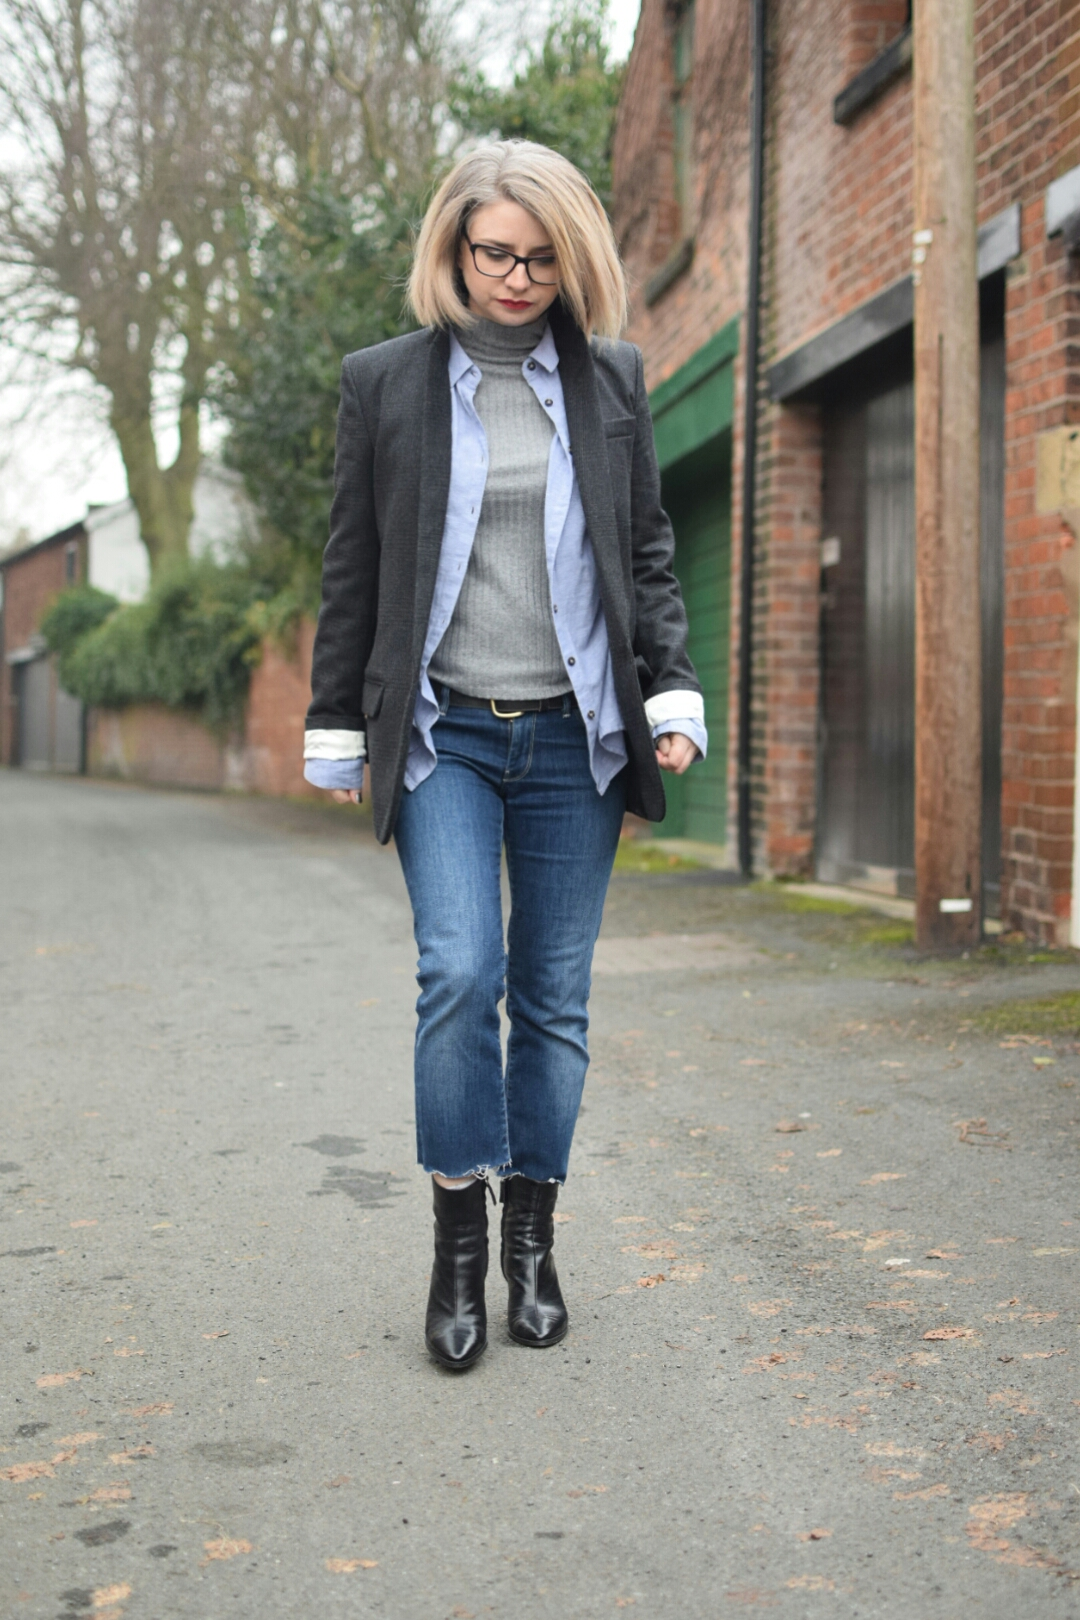 Isabel Marant Igor Single Breasted Wool-Blend Jacket, Topshop Skinny Ribbed Turtleneck, Topshop Blue Oversized Shirt, 7ForAll Mankind and Zara Ankle Boots.